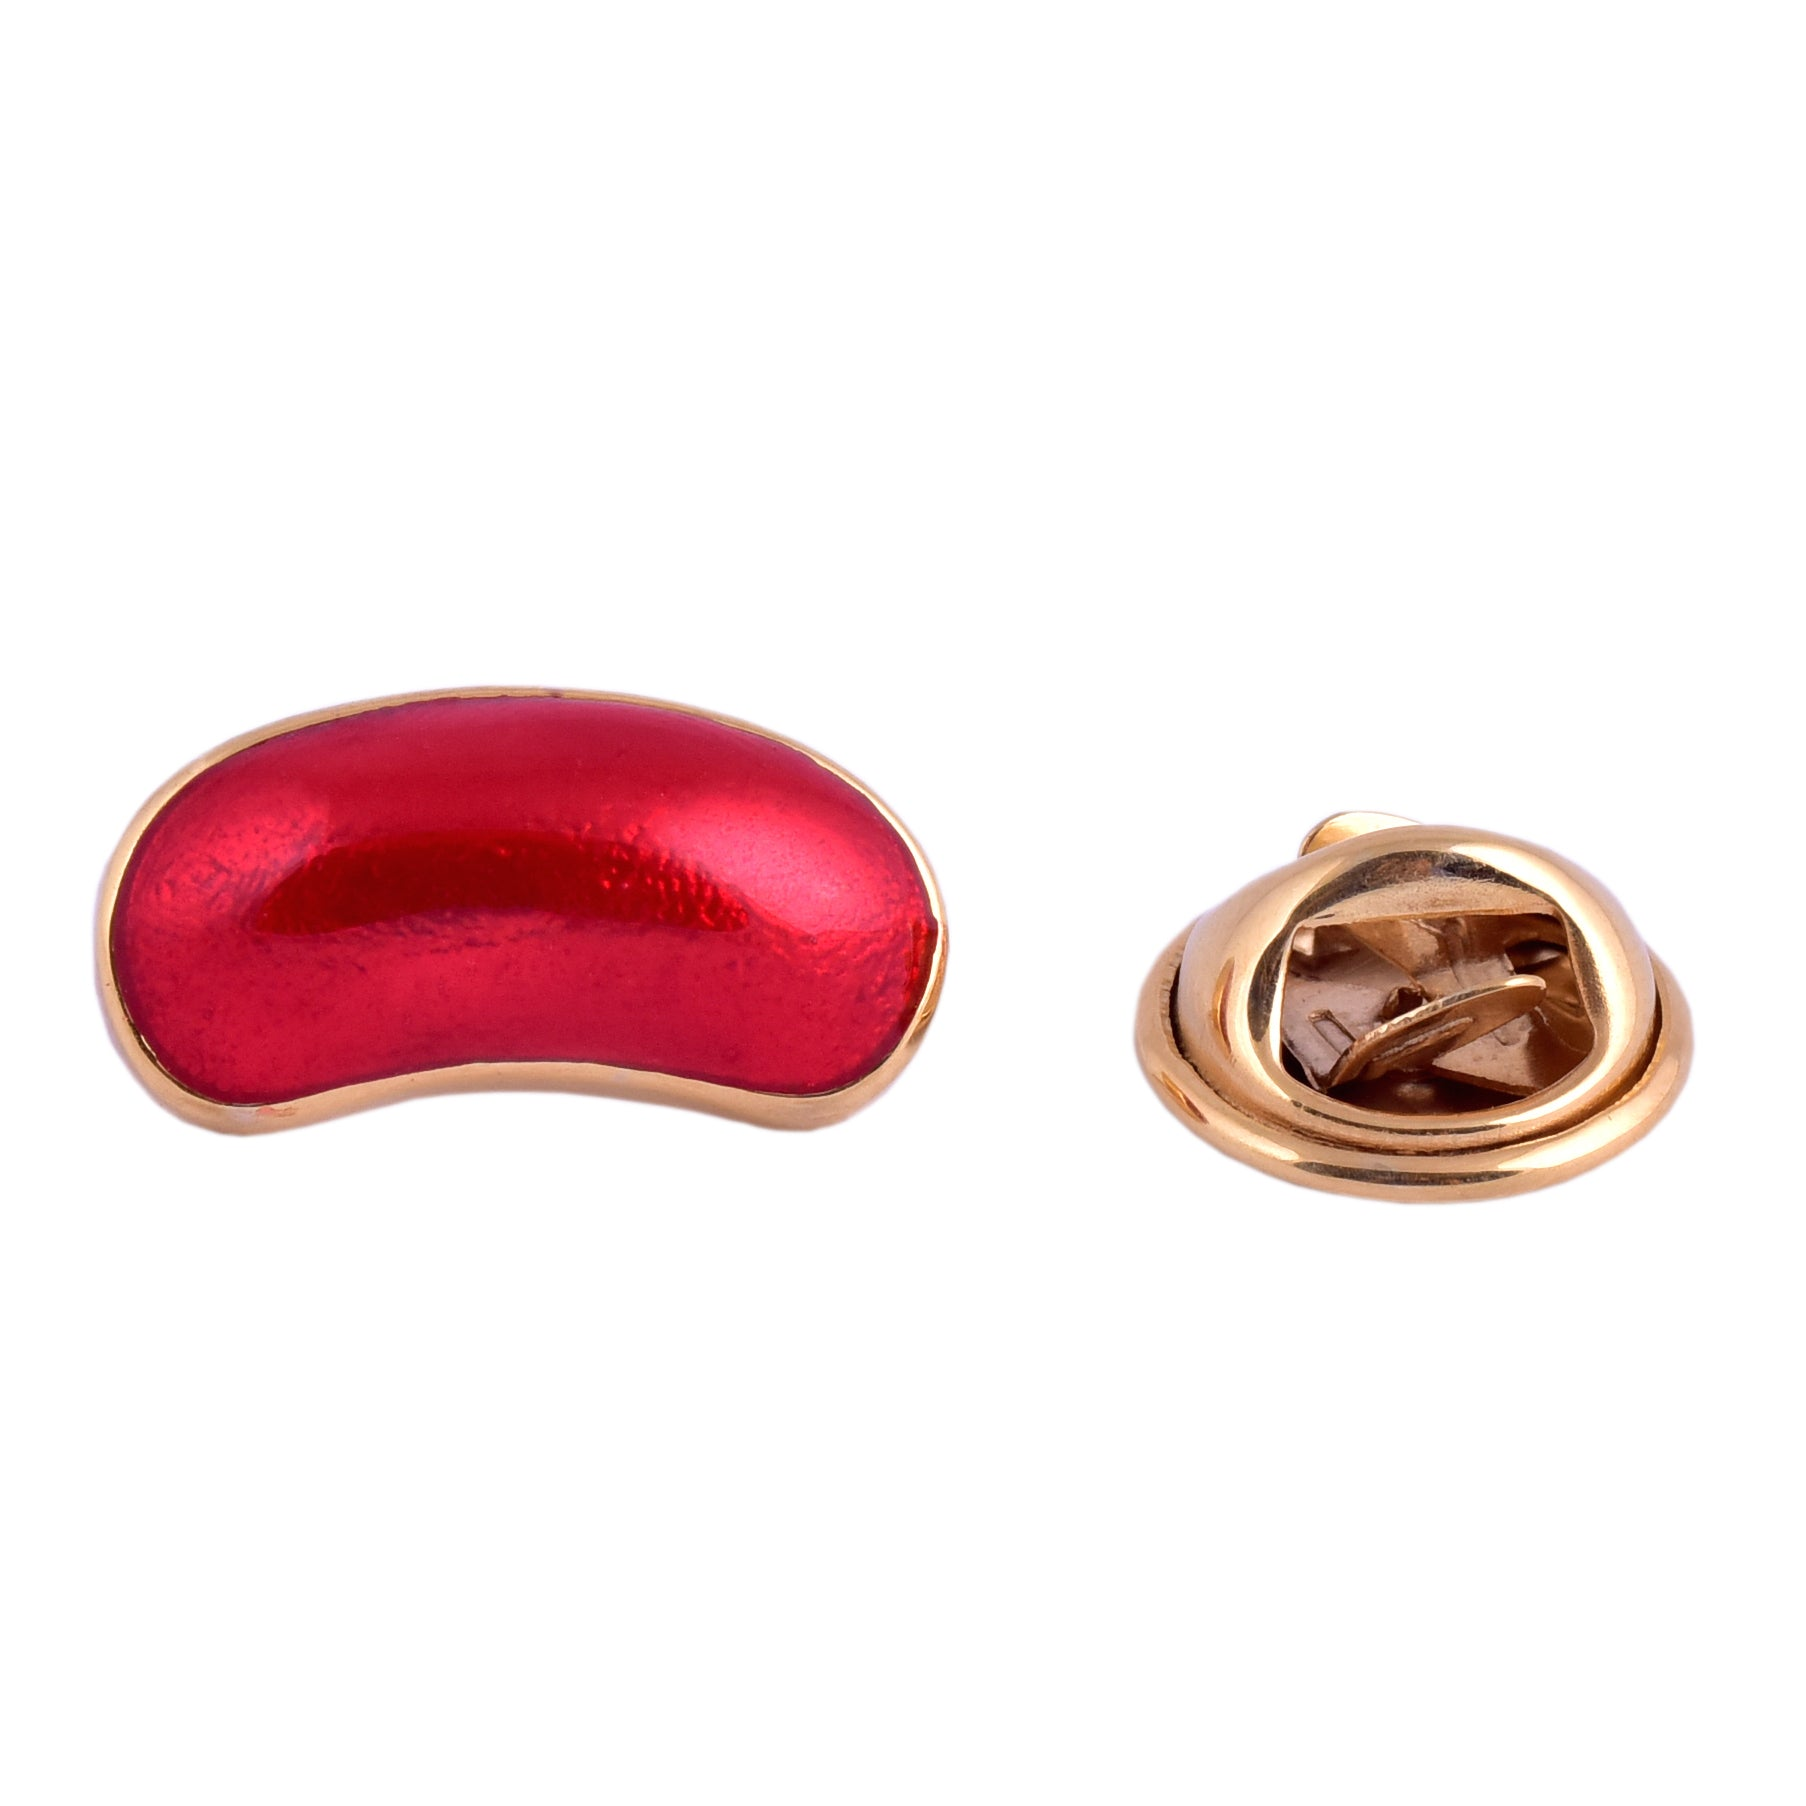 Red Jelly Bean Brooch Pin